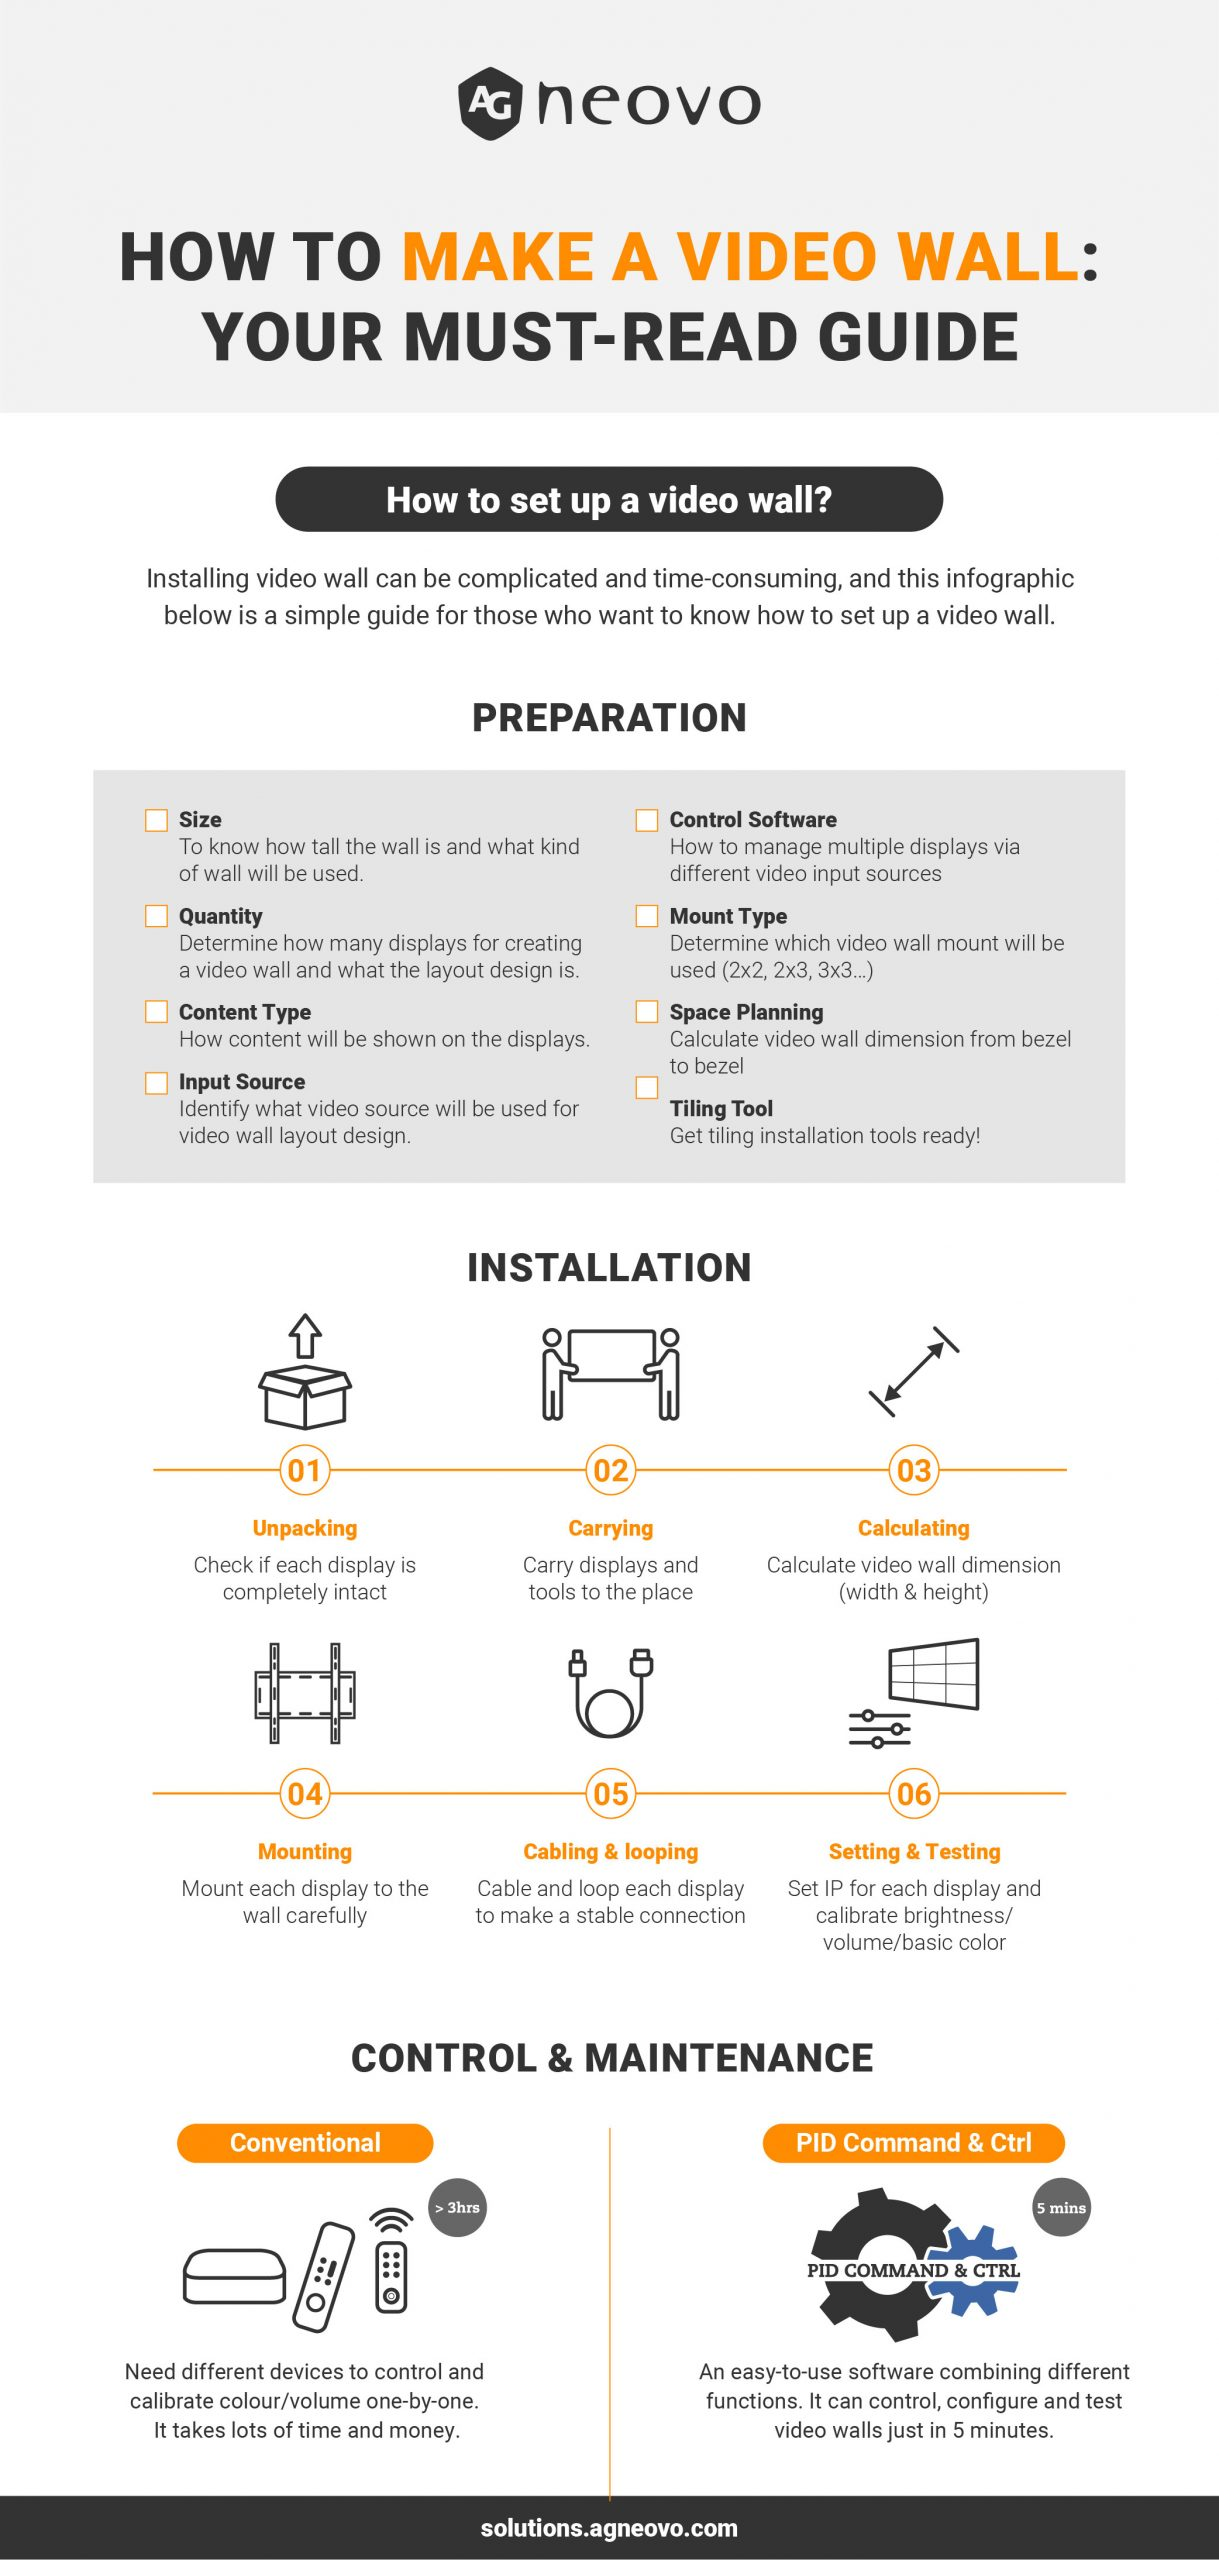 Infographic_How to Make a Video Wall: Your Must-Read Guide